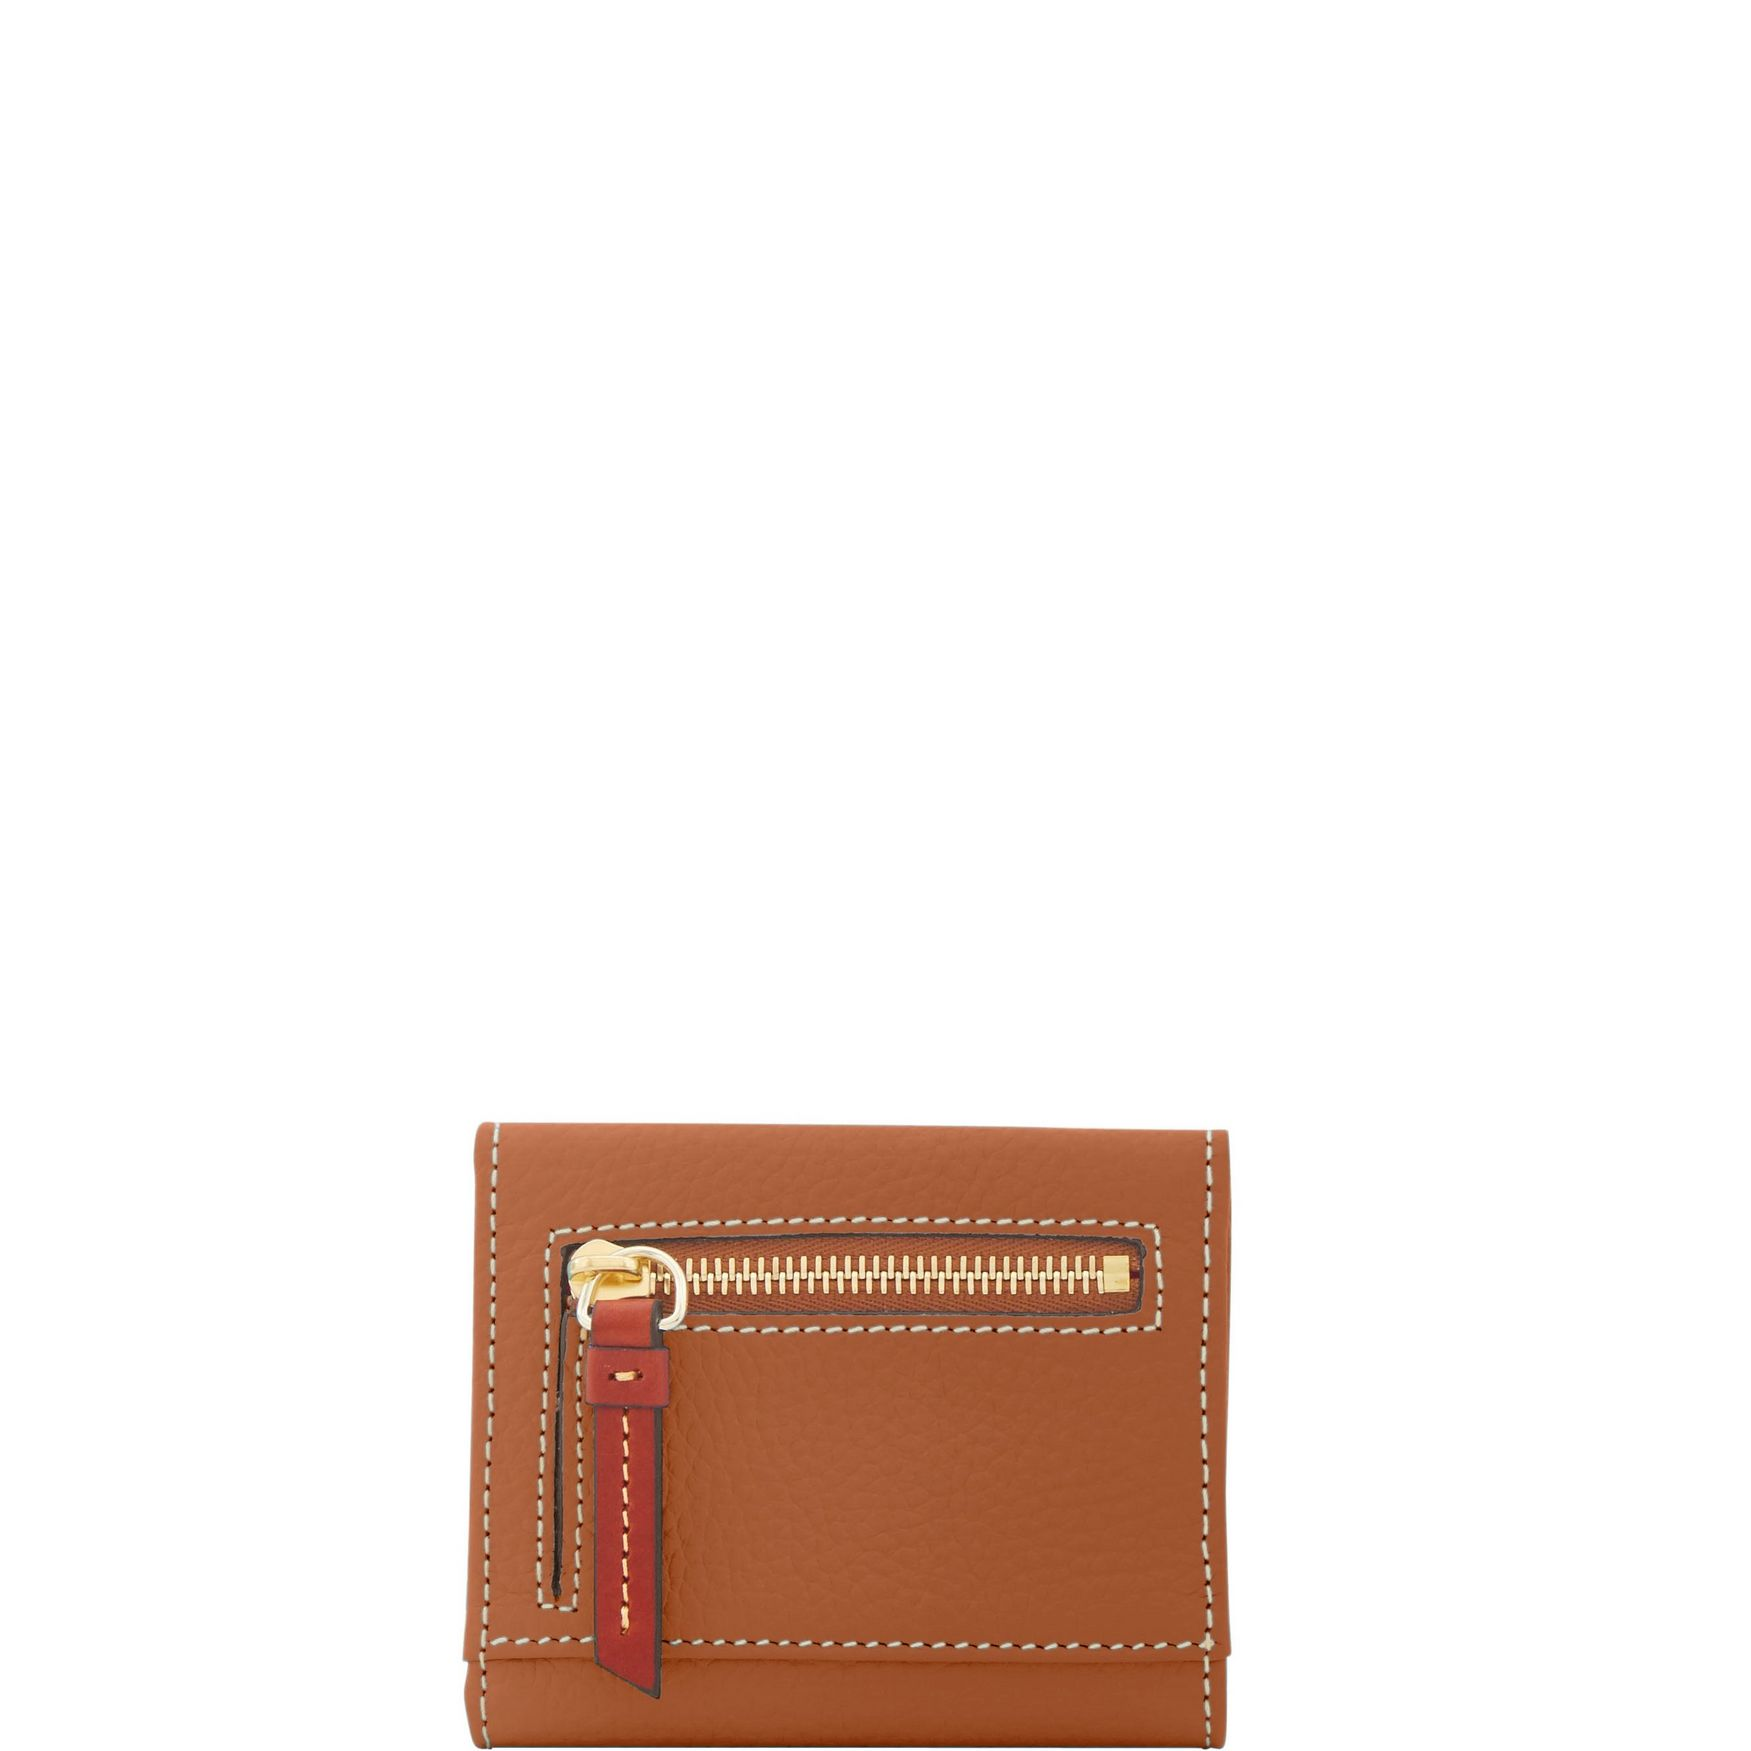 Dooney-amp-Bourke-Pebble-Grain-Small-Flap-Wallet thumbnail 18